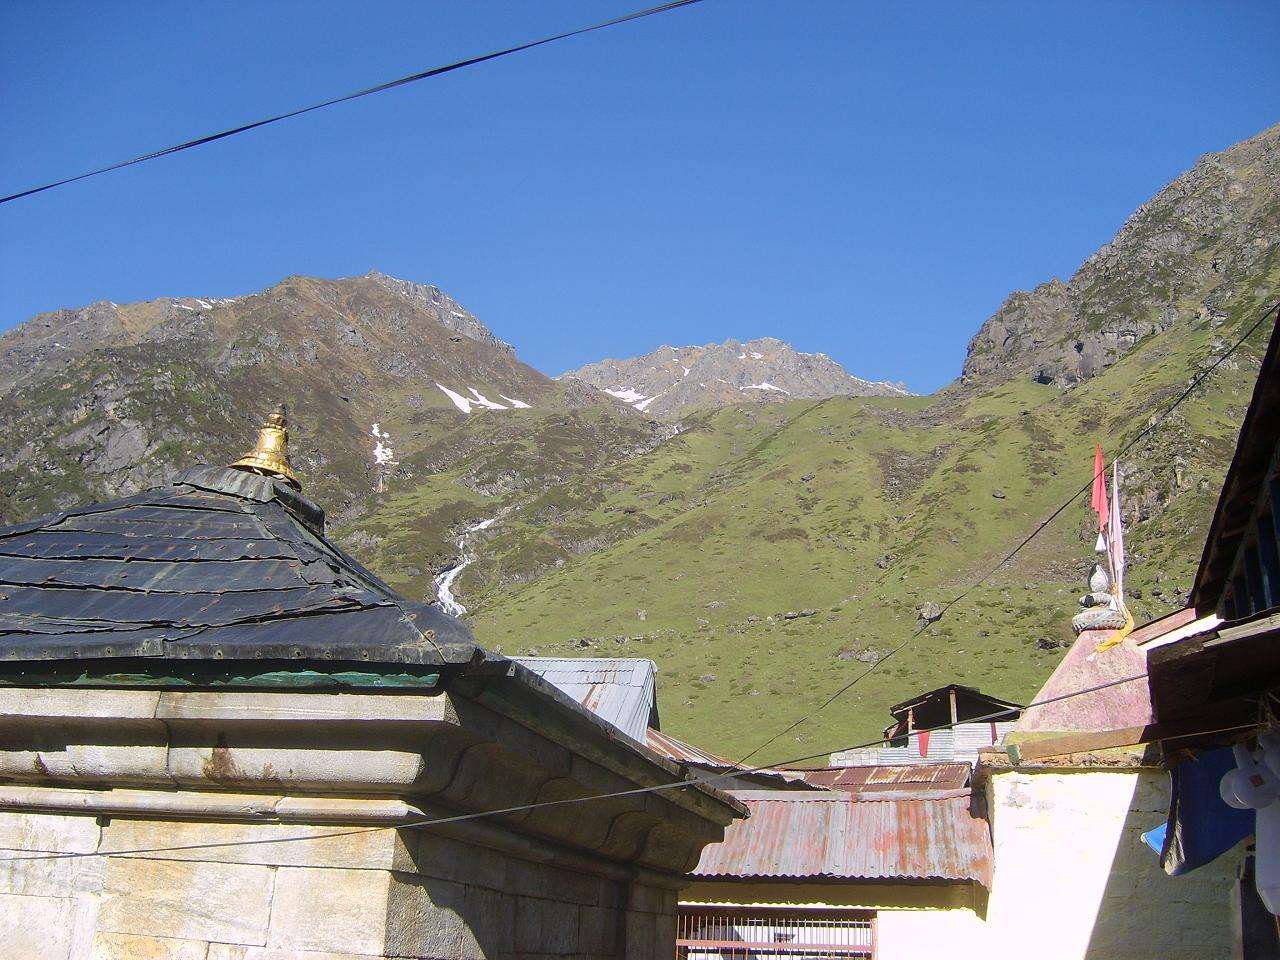 Kedarnath India  city pictures gallery : Kedarnath temple – photo gallery, pictures of India